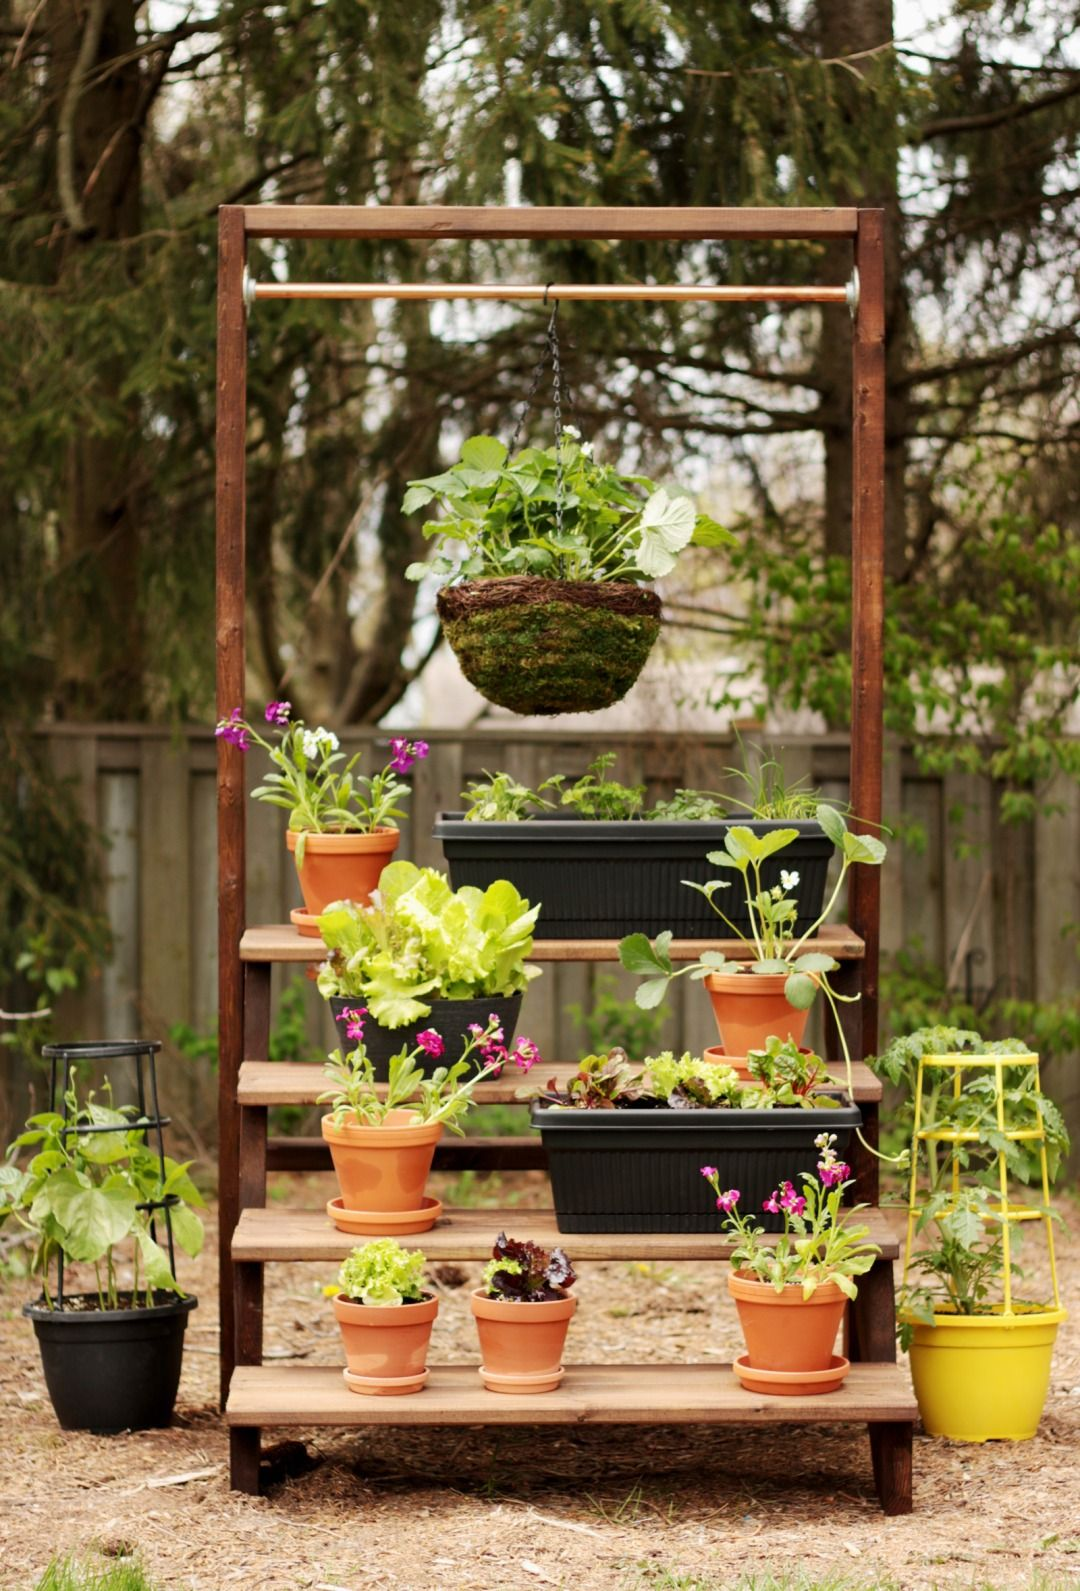 7 Steps To A DIY Staircase Garden For Your Patio. Hanging BasketsHanging  Basket StandThe ...